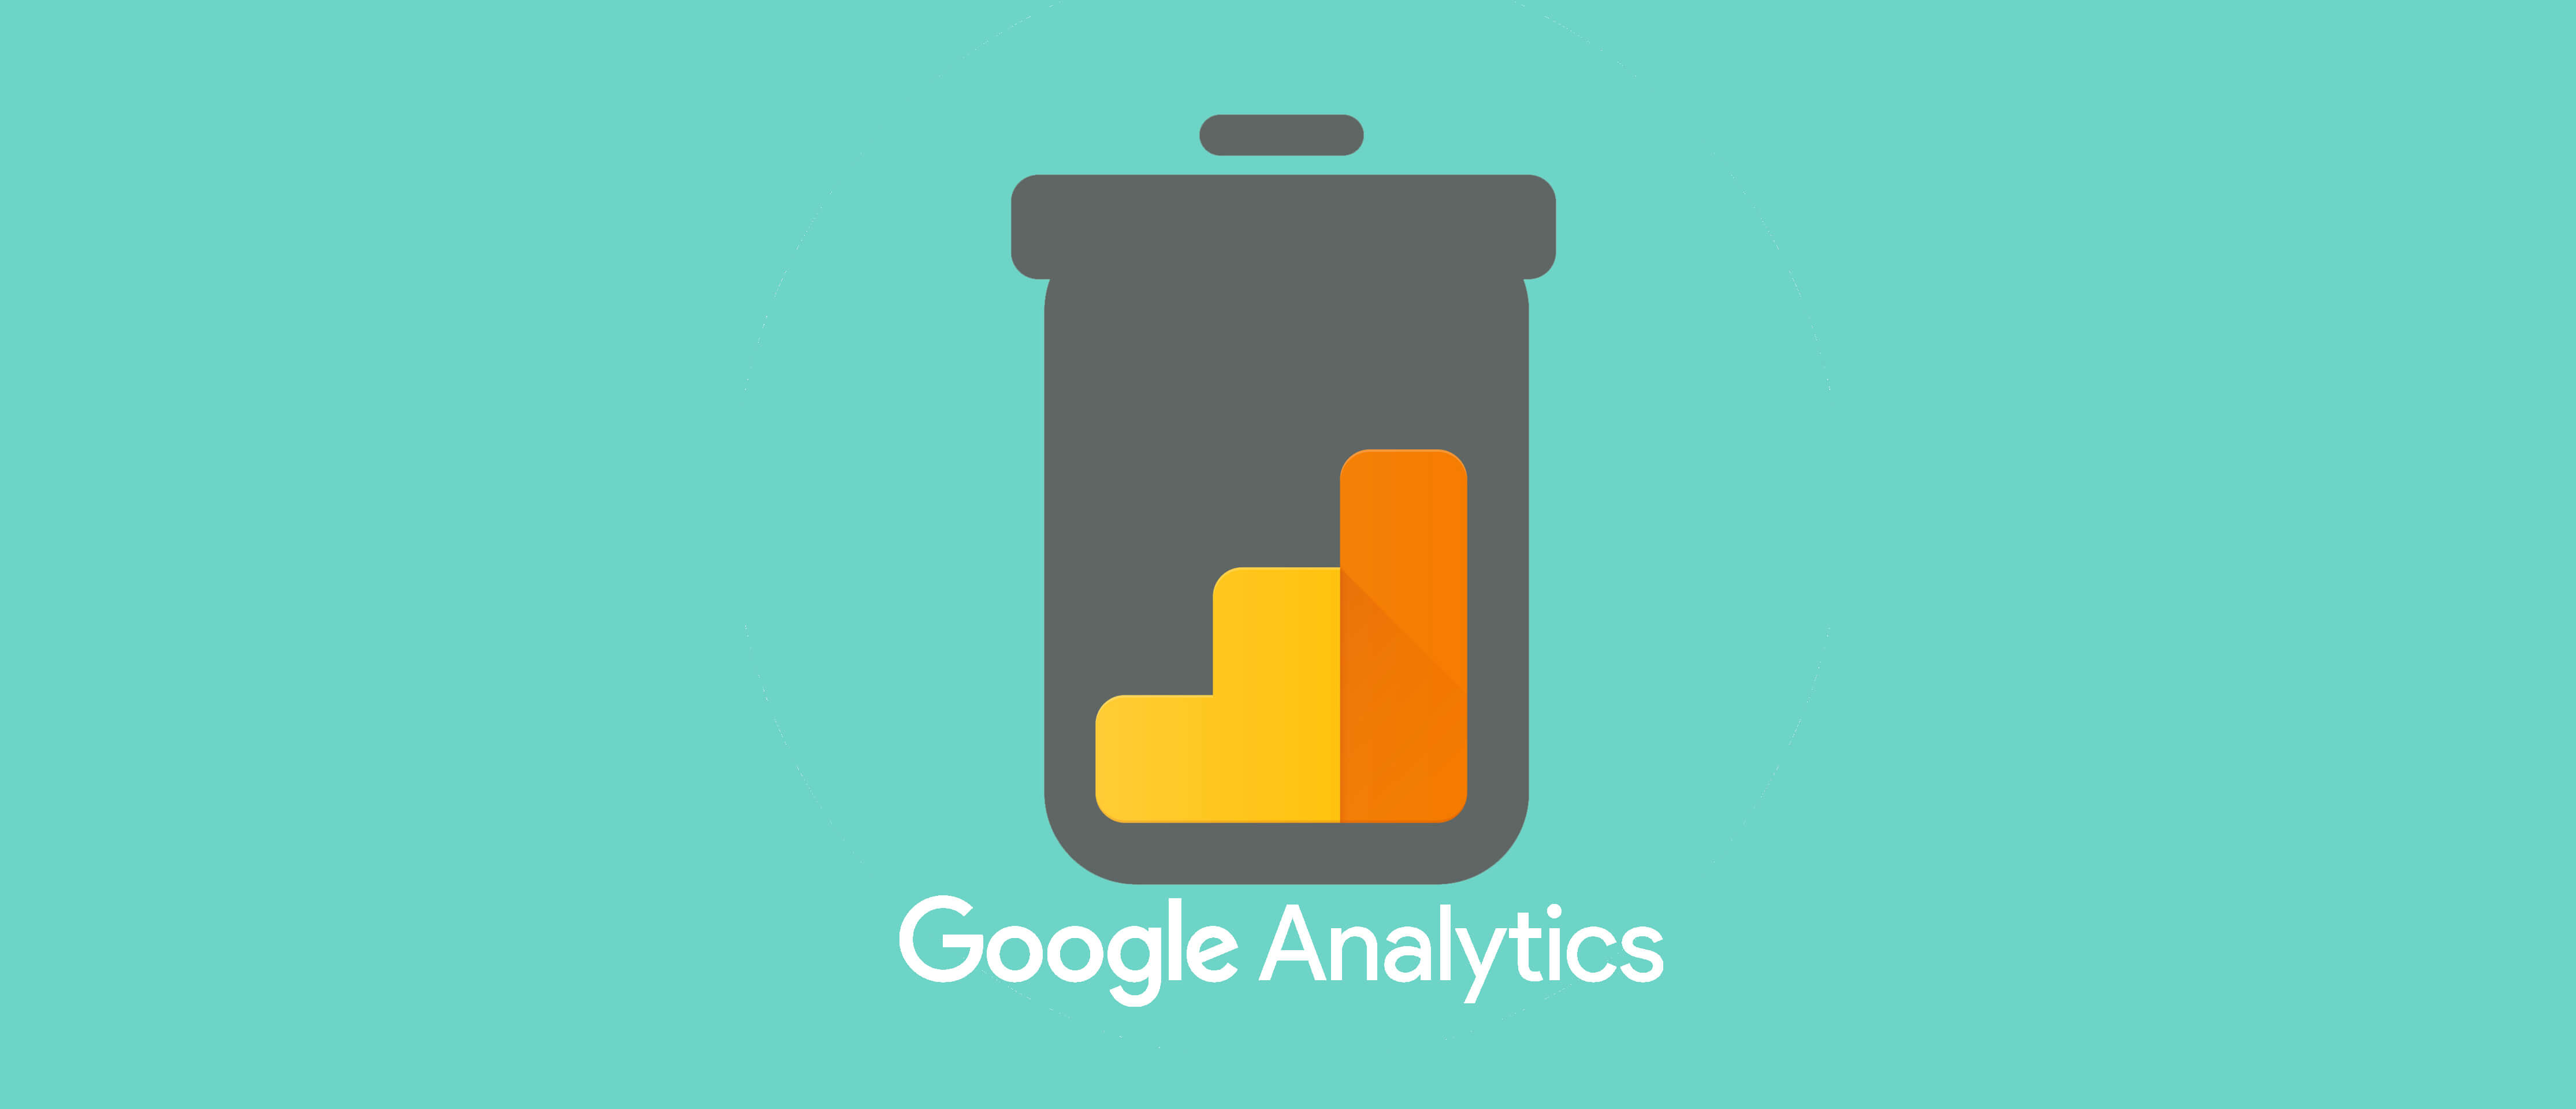 Google Analytics Introduces Data Retention Controls